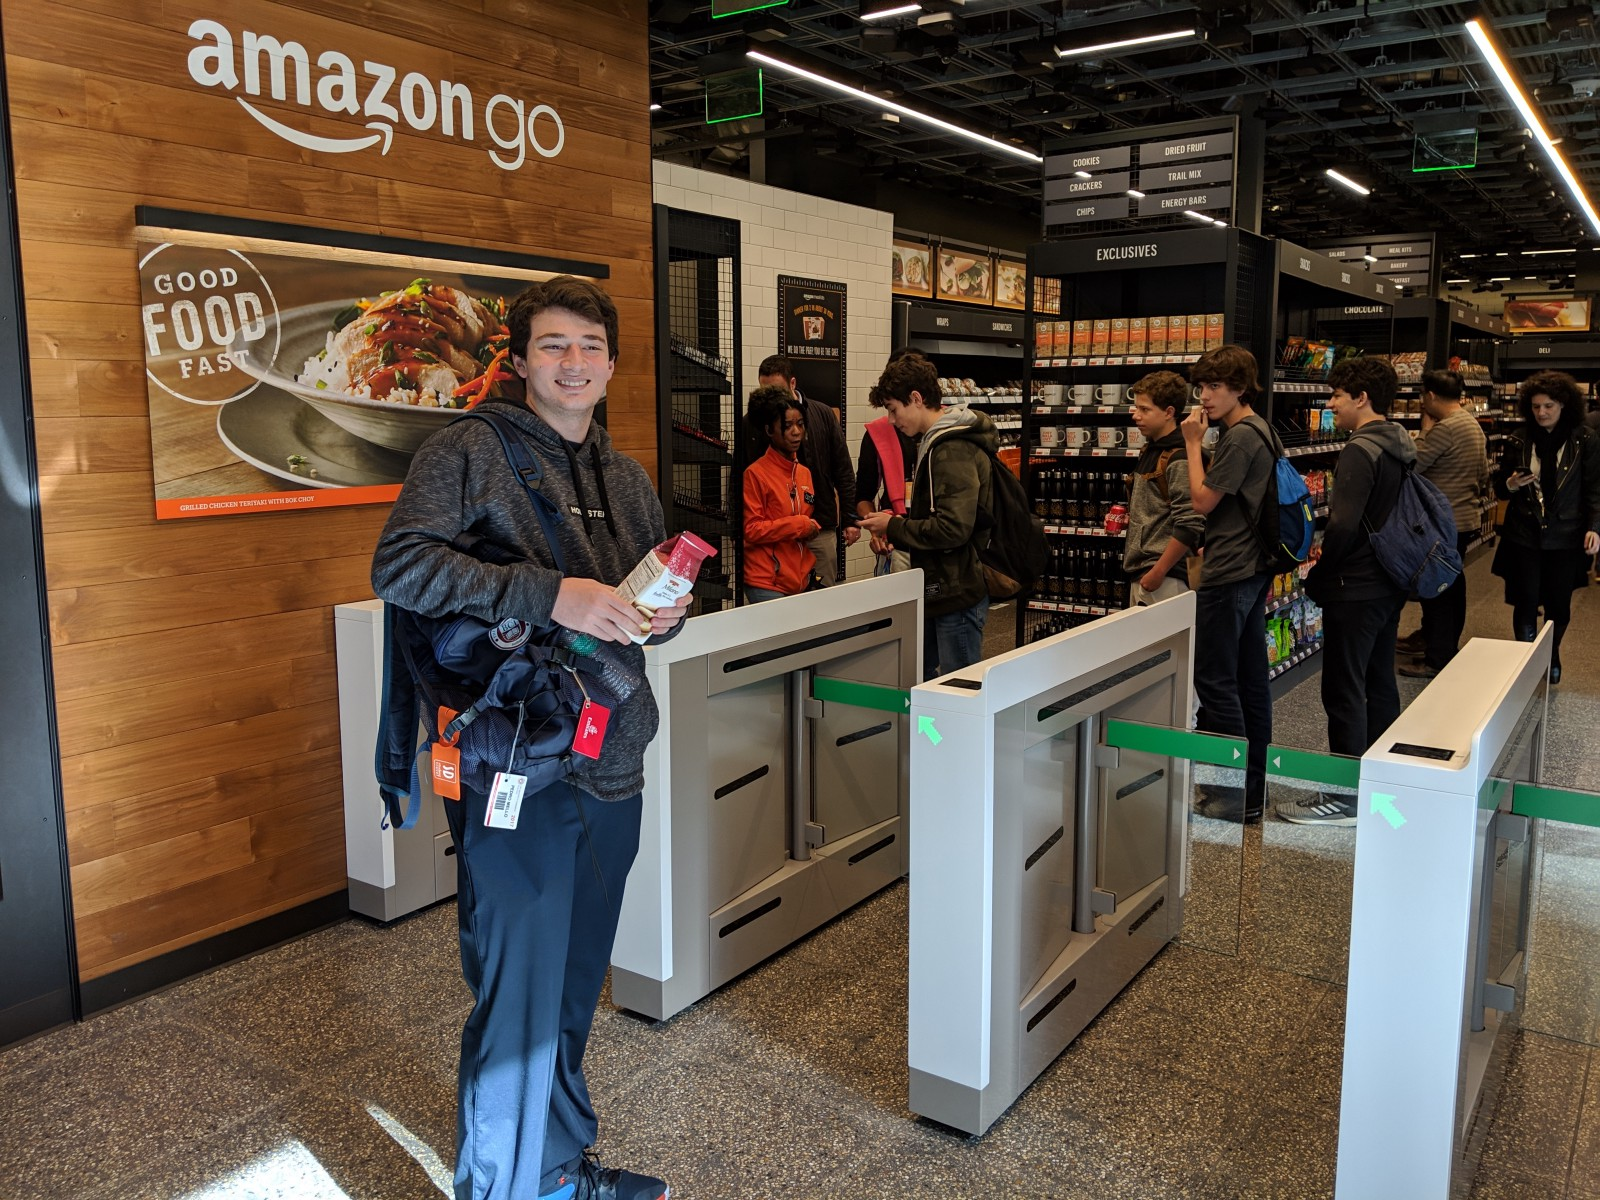 Shoplifting-esque experience at the AmazonGo store